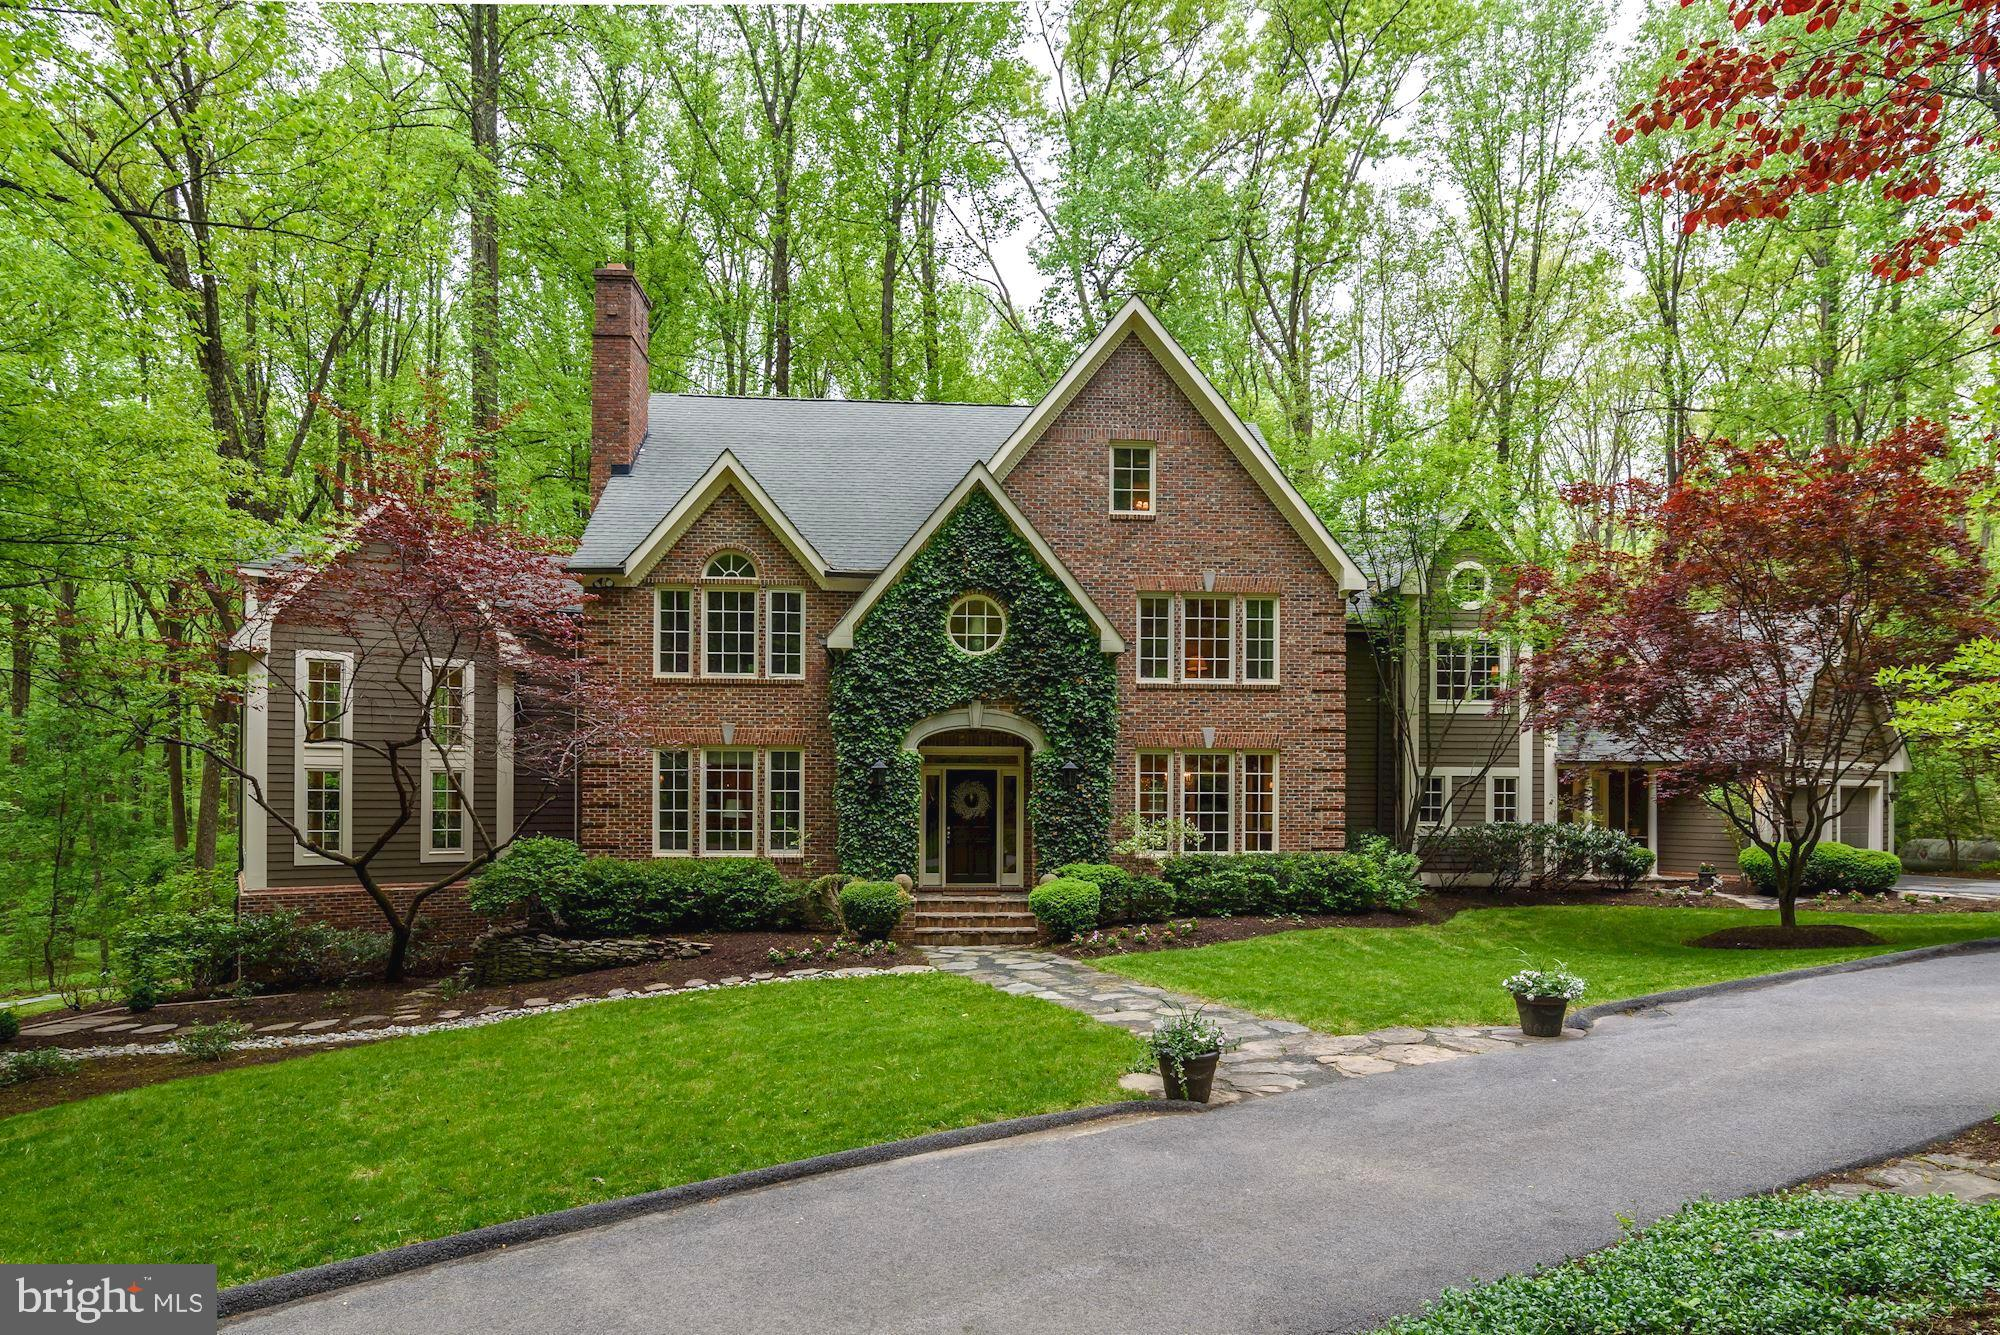 13839 LAKESIDE DRIVE, CLARKSVILLE, MD 21029